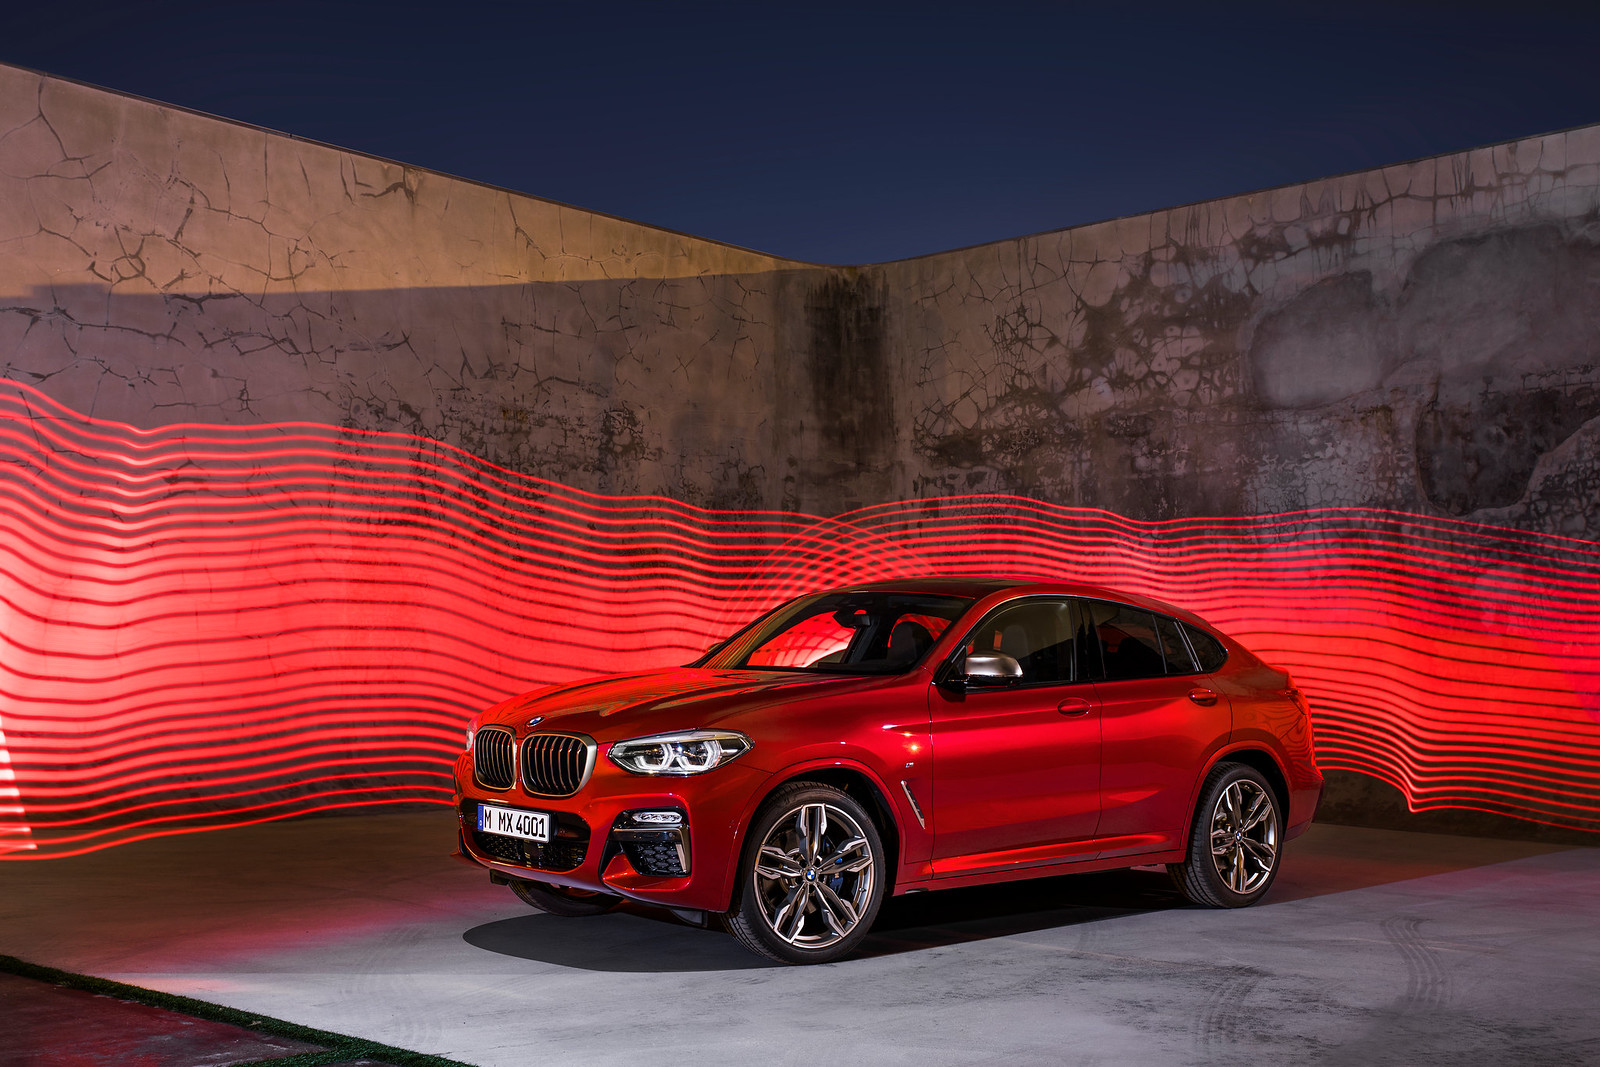 This is the all-new 2019 BMW X4